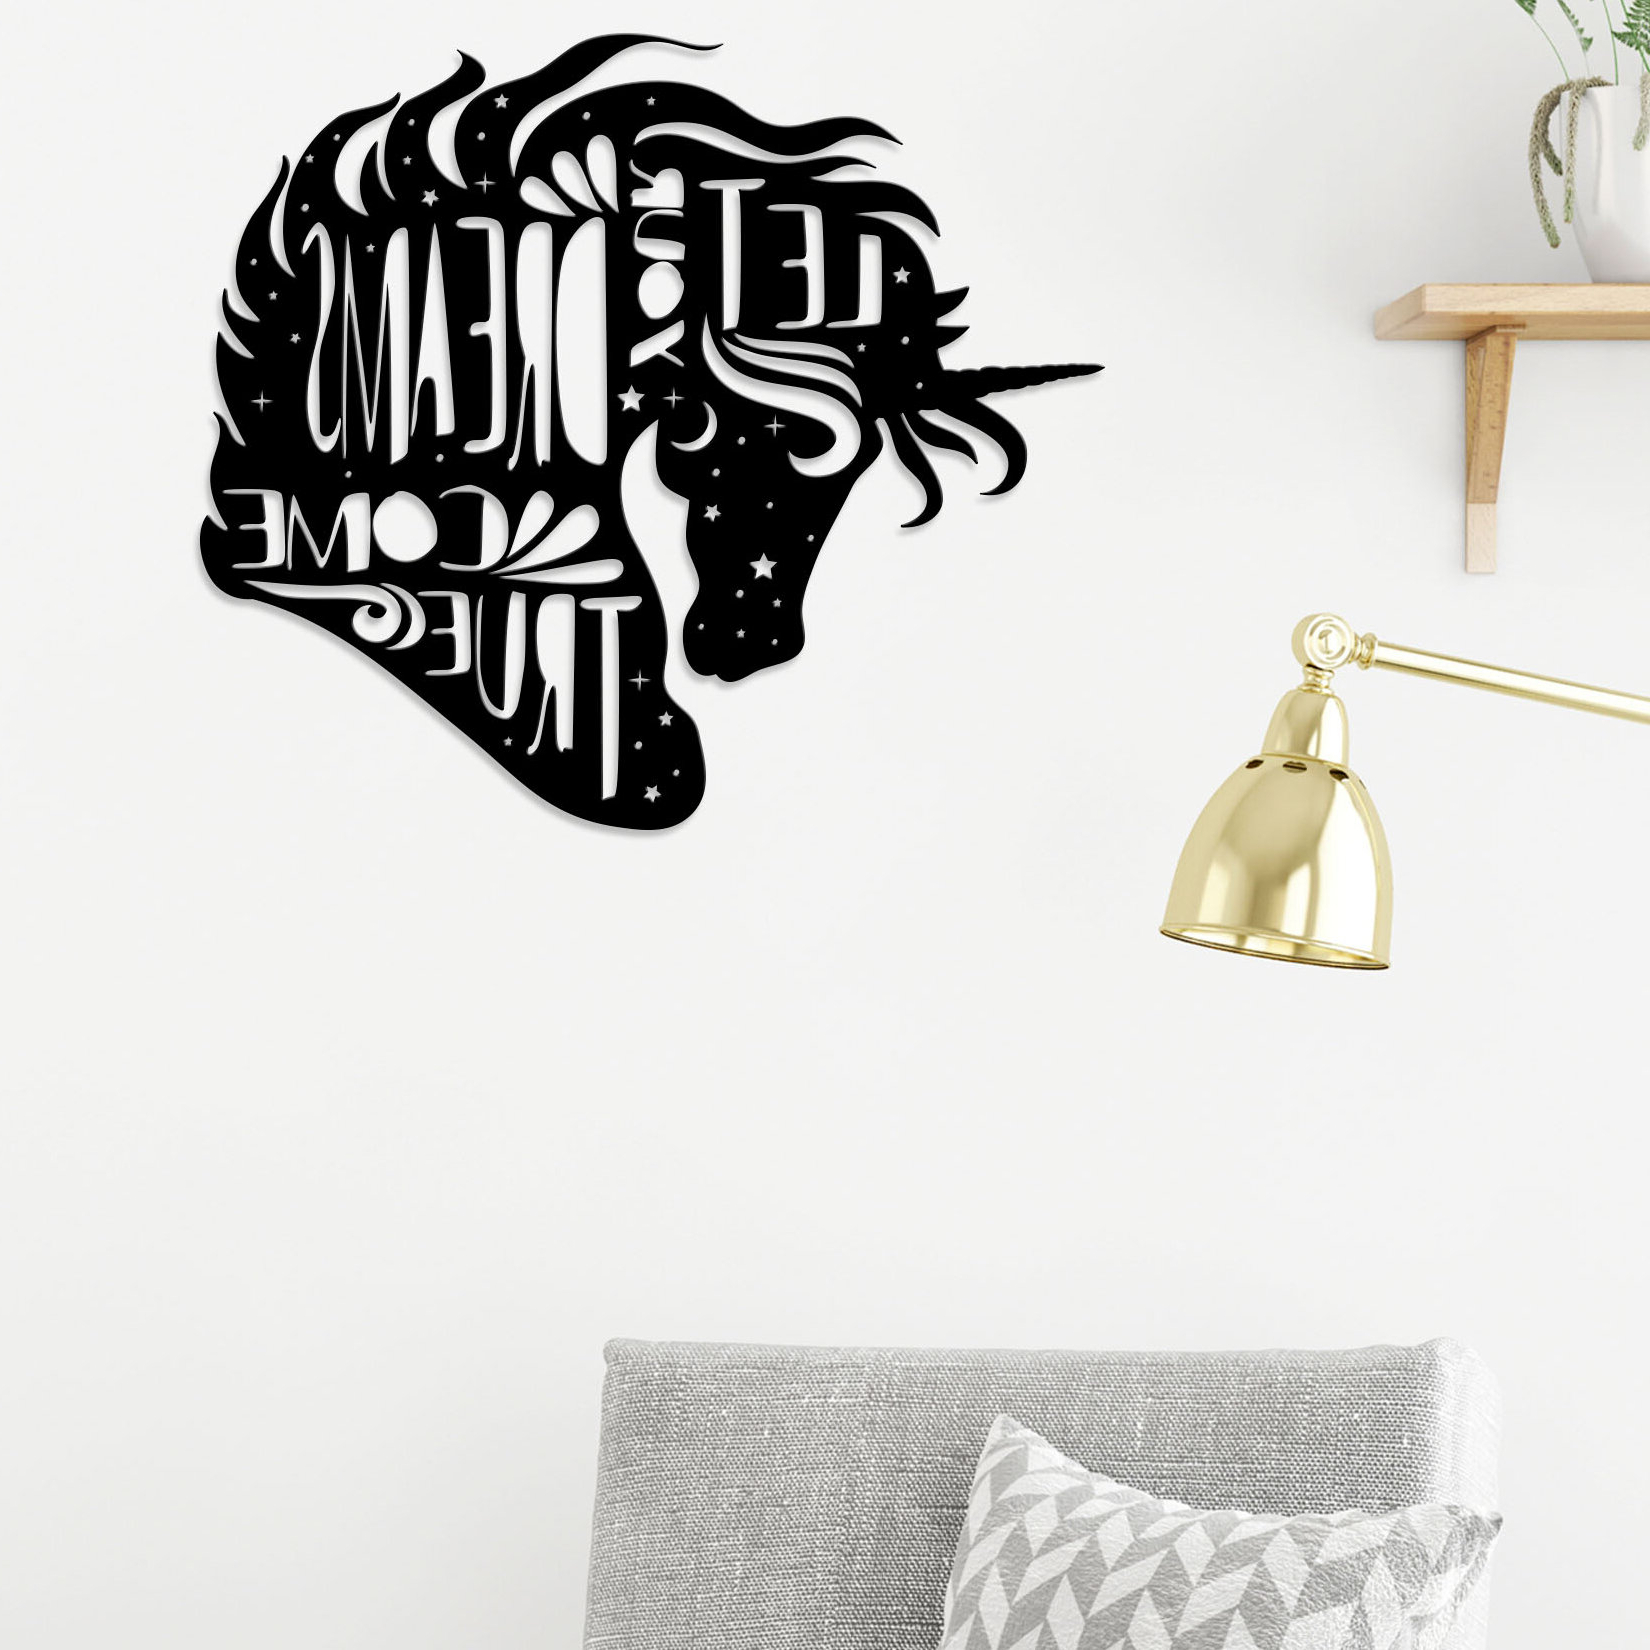 Dream Metal Wall Décor Intended For Trendy Unicorn Dreams Modern Metal Wall Décor (View 11 of 20)